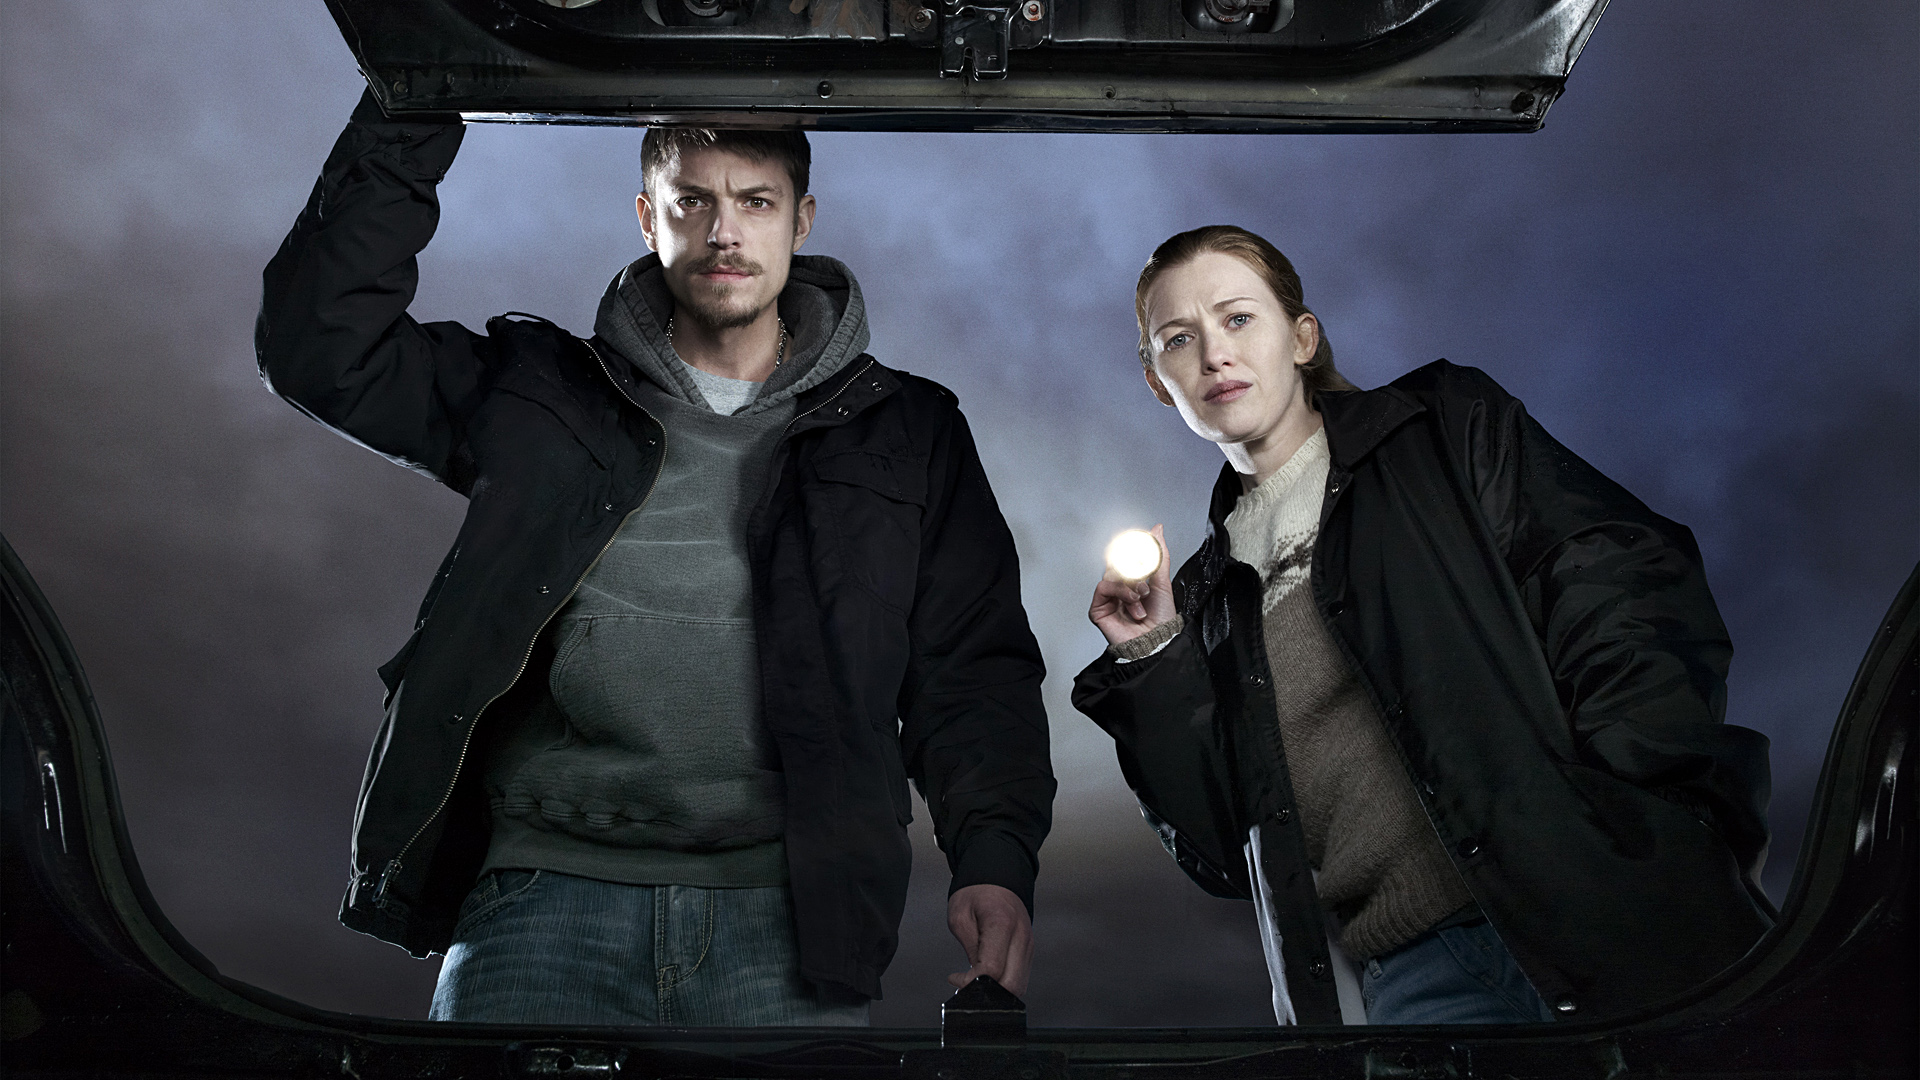 'The Killing' renewed after all